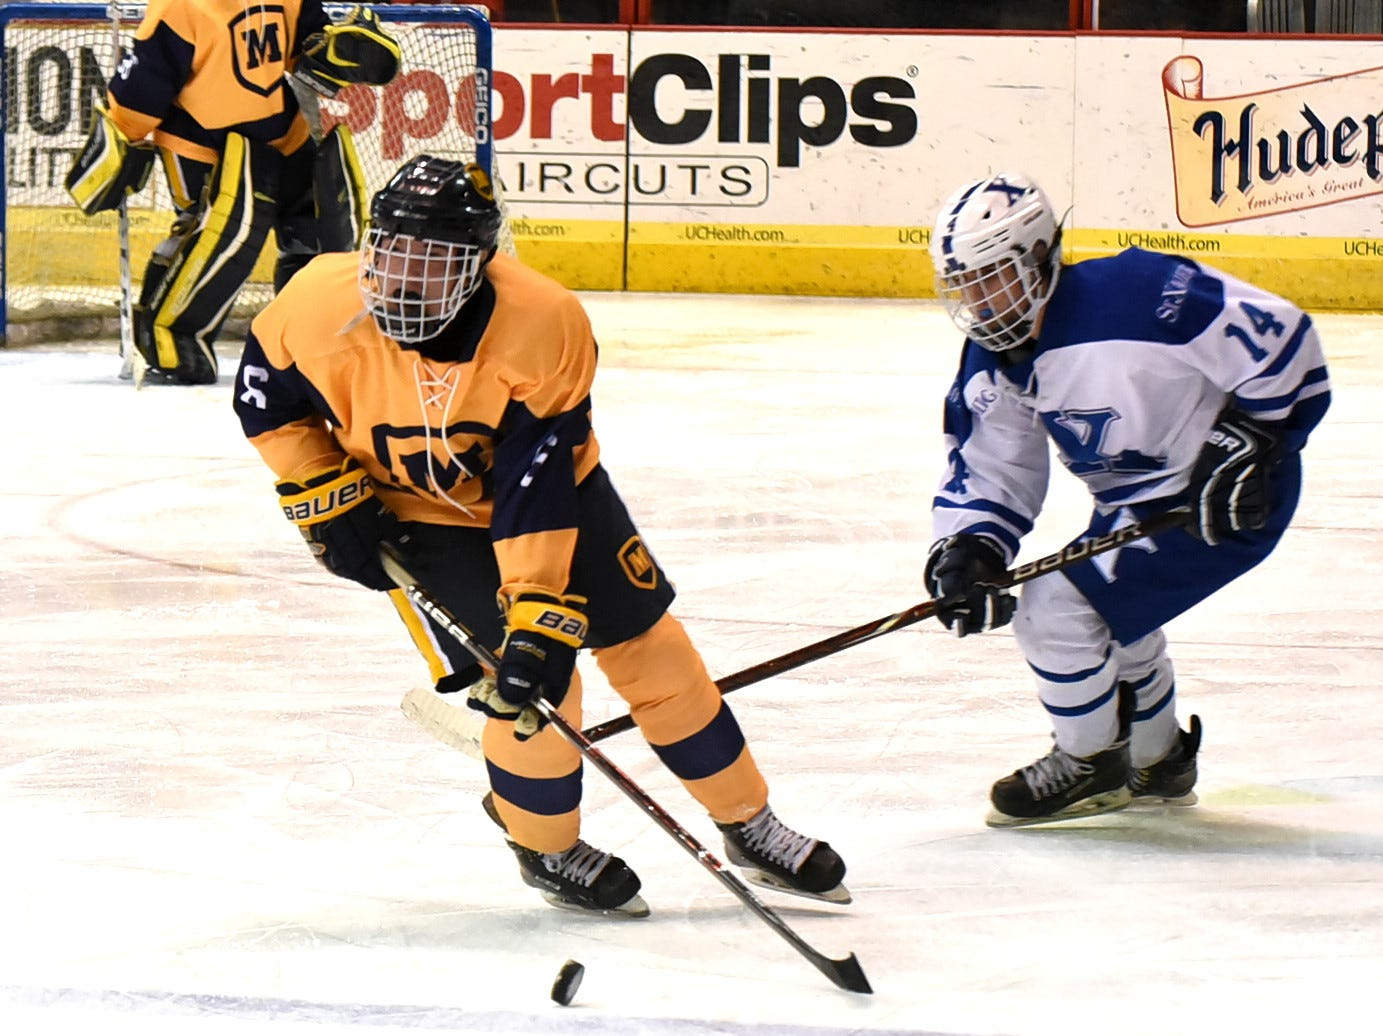 Moeller's Jacob Carota (6) takes the puck past the blue line for the Crusaders in their 3-2 win over St. Xavier at US Bank Arena, December 7, 2018.